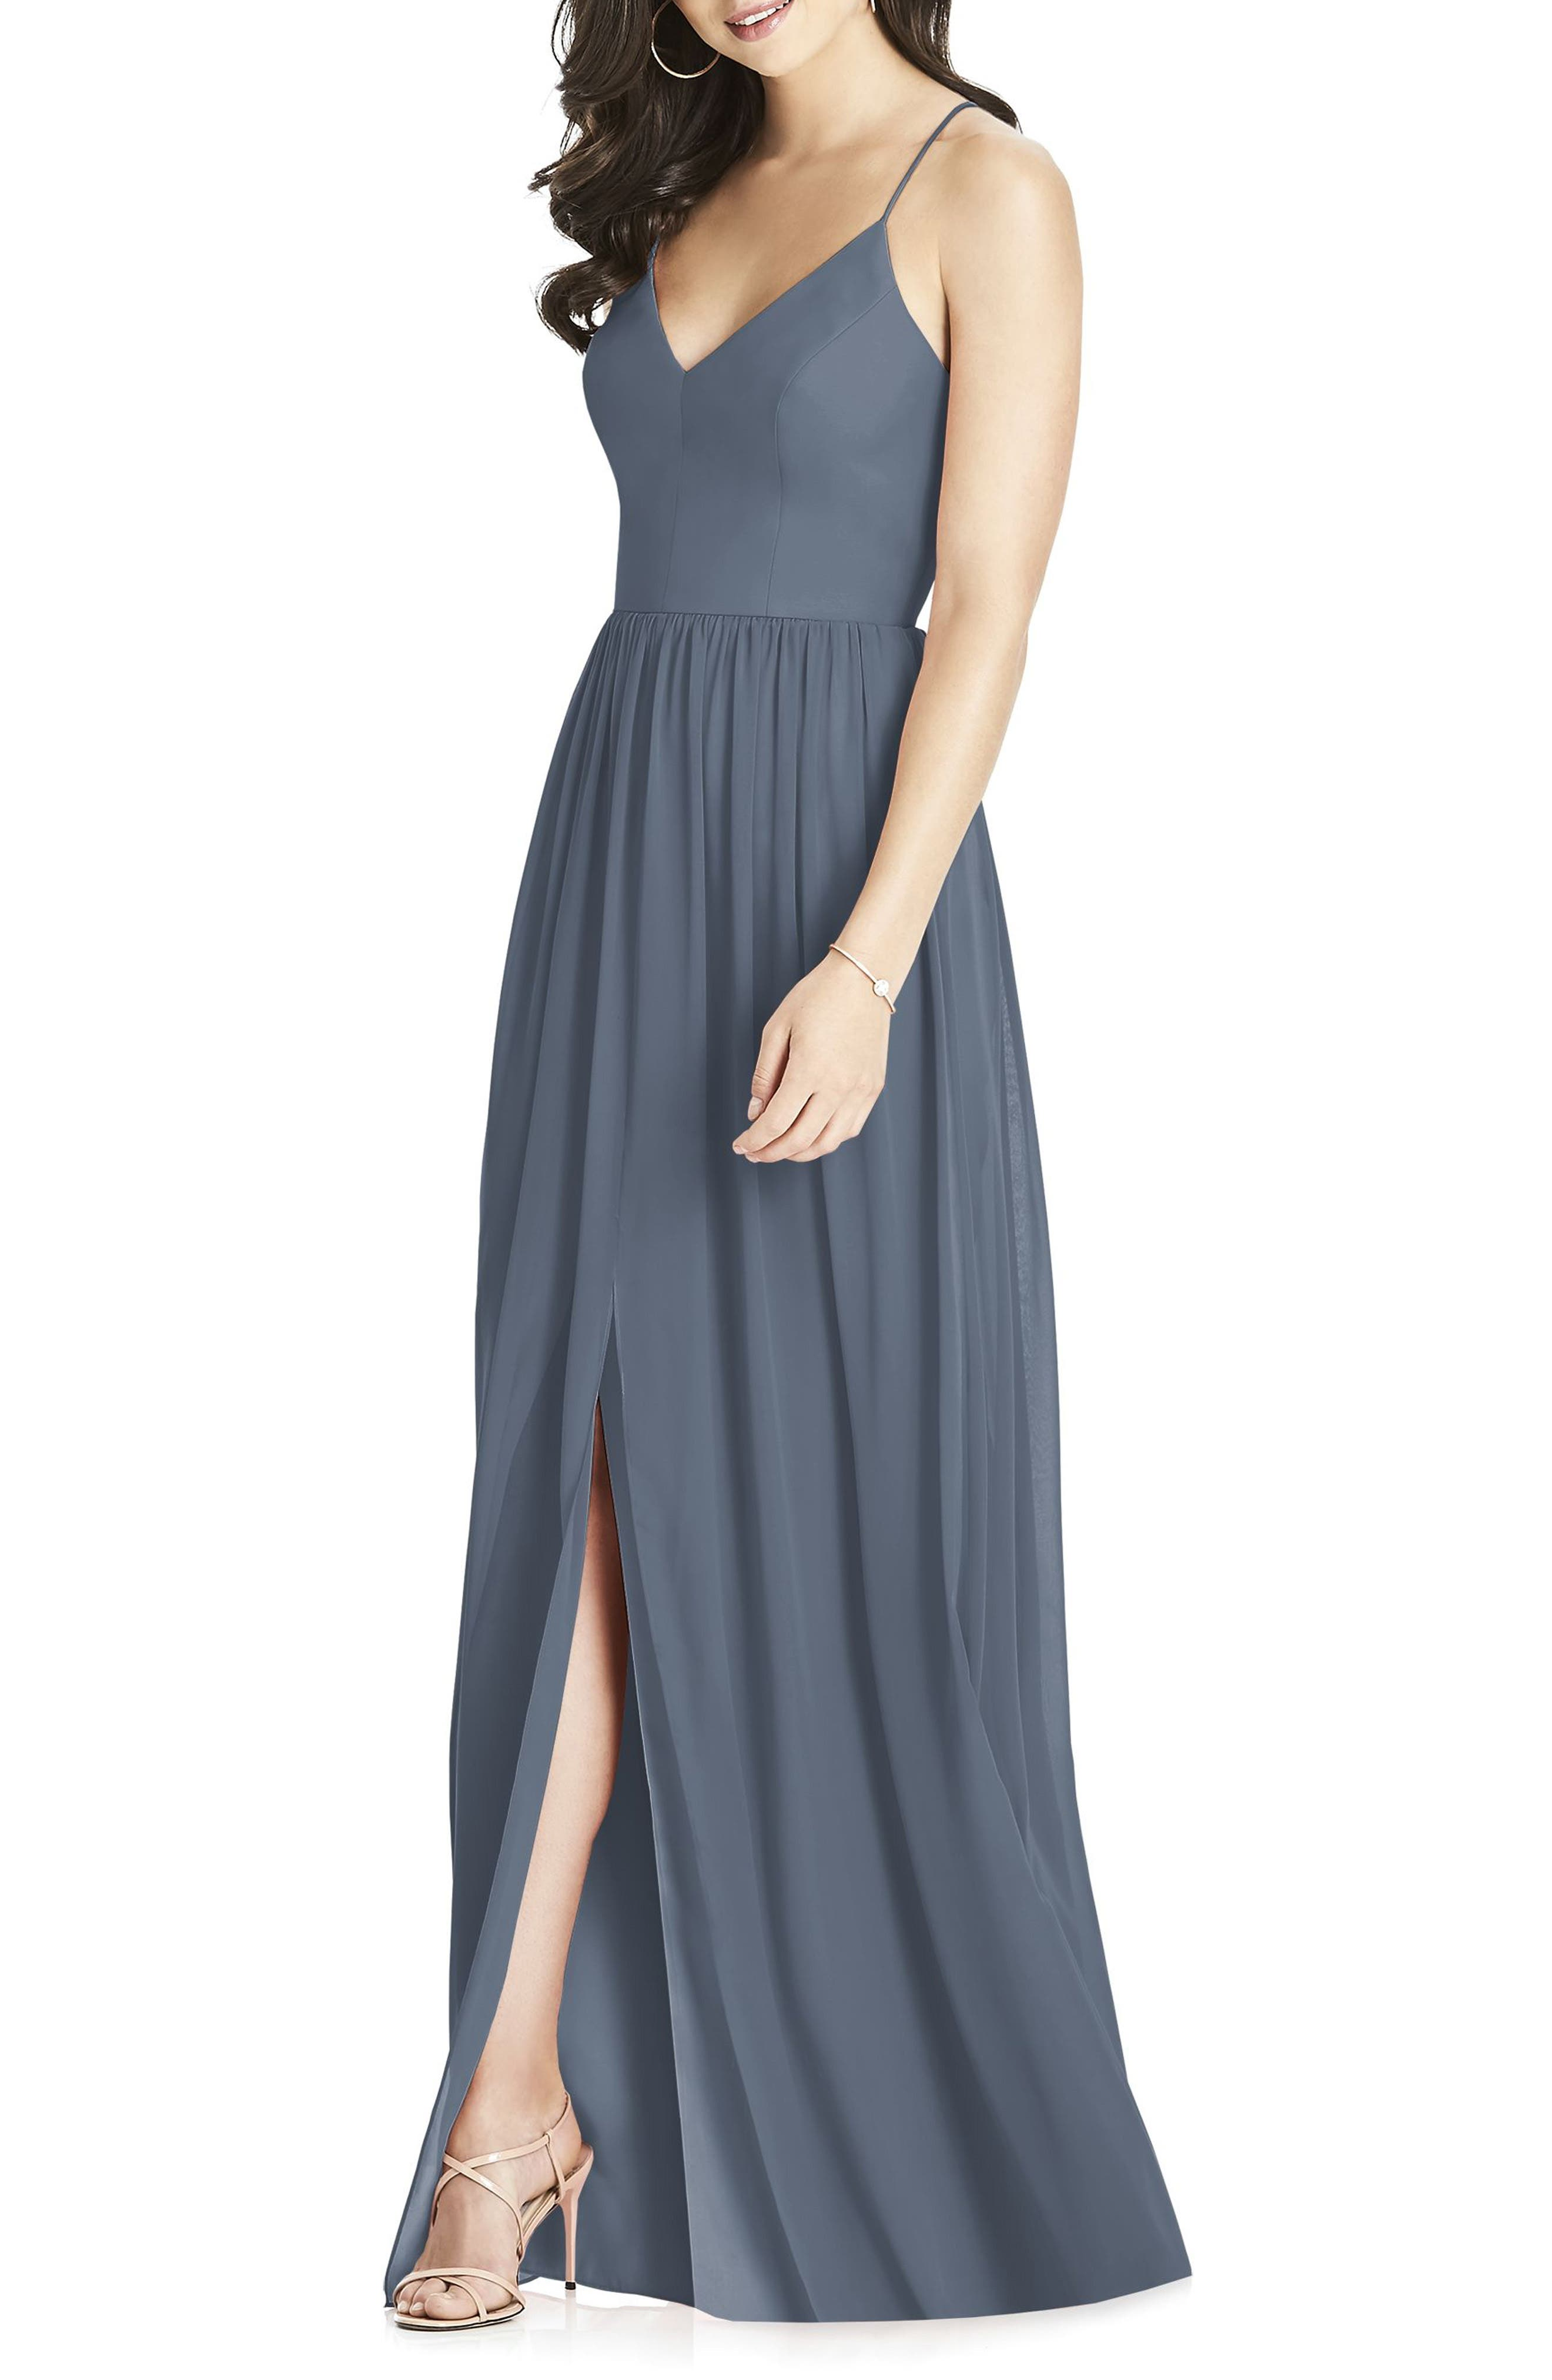 Alternate Image 1 Selected - Dessy Collection Spaghetti Strap Chiffon Gown